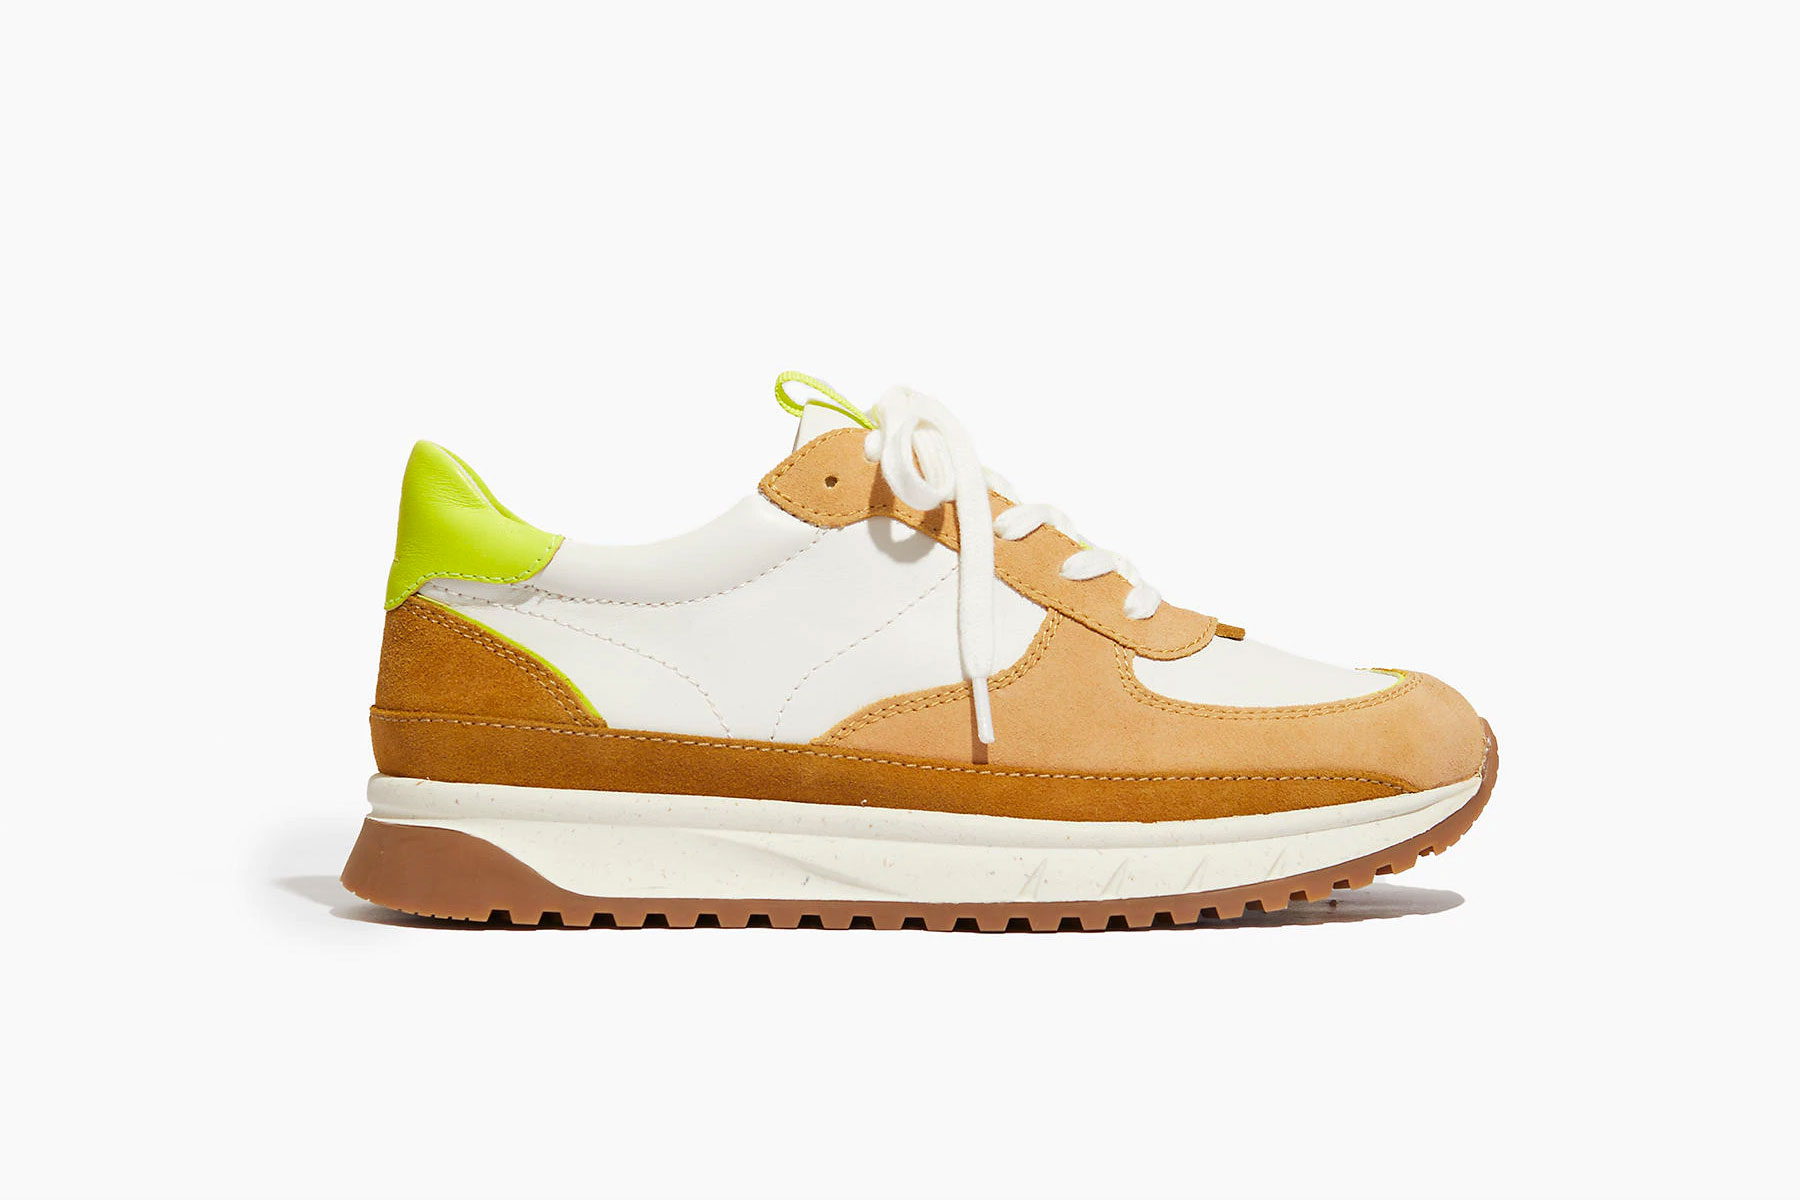 White, tan, and neon green sneakers